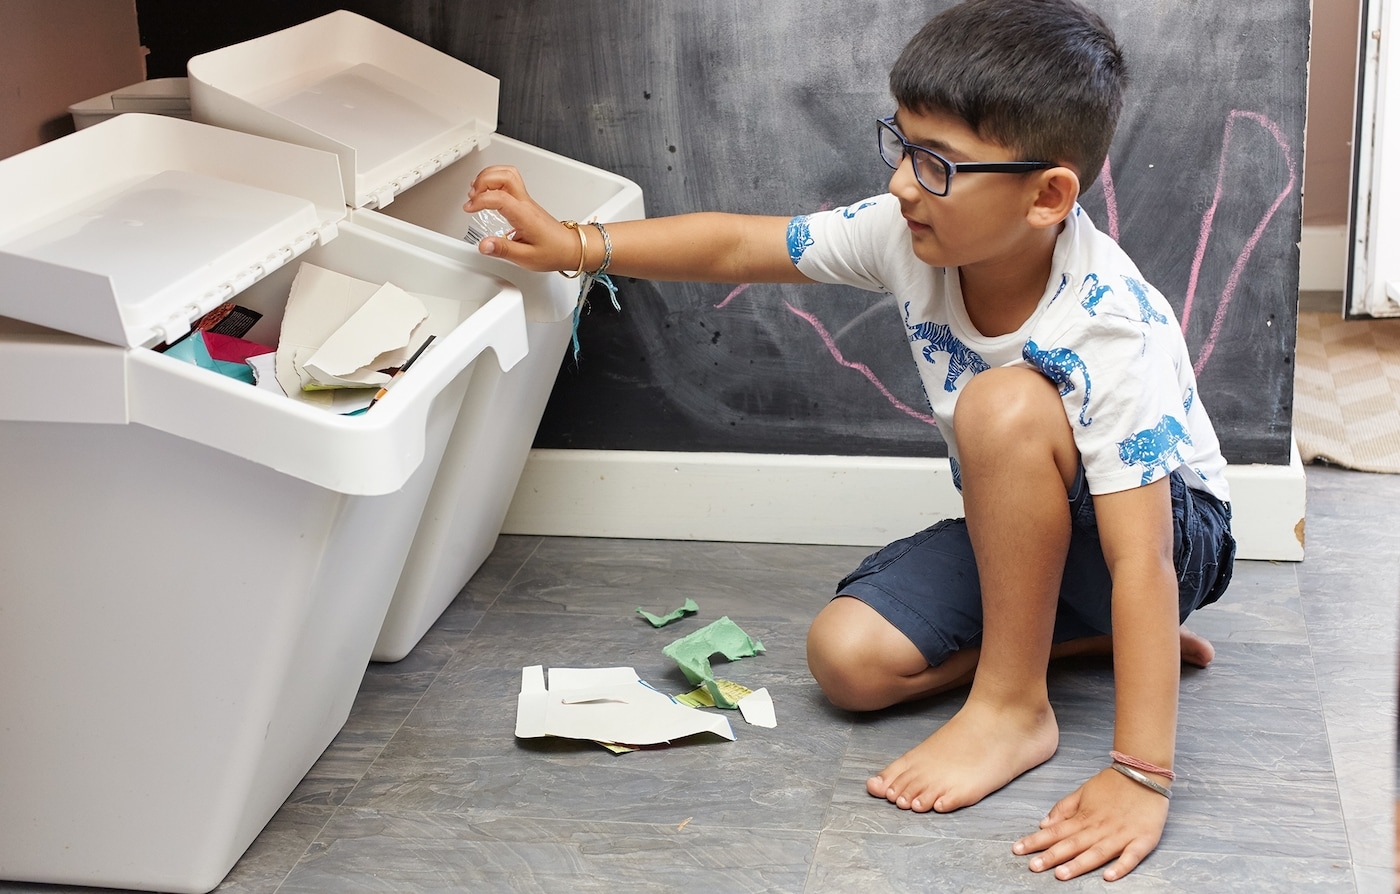 A young boy is sitting on the floor and recycling cardboard in white sorting bins.